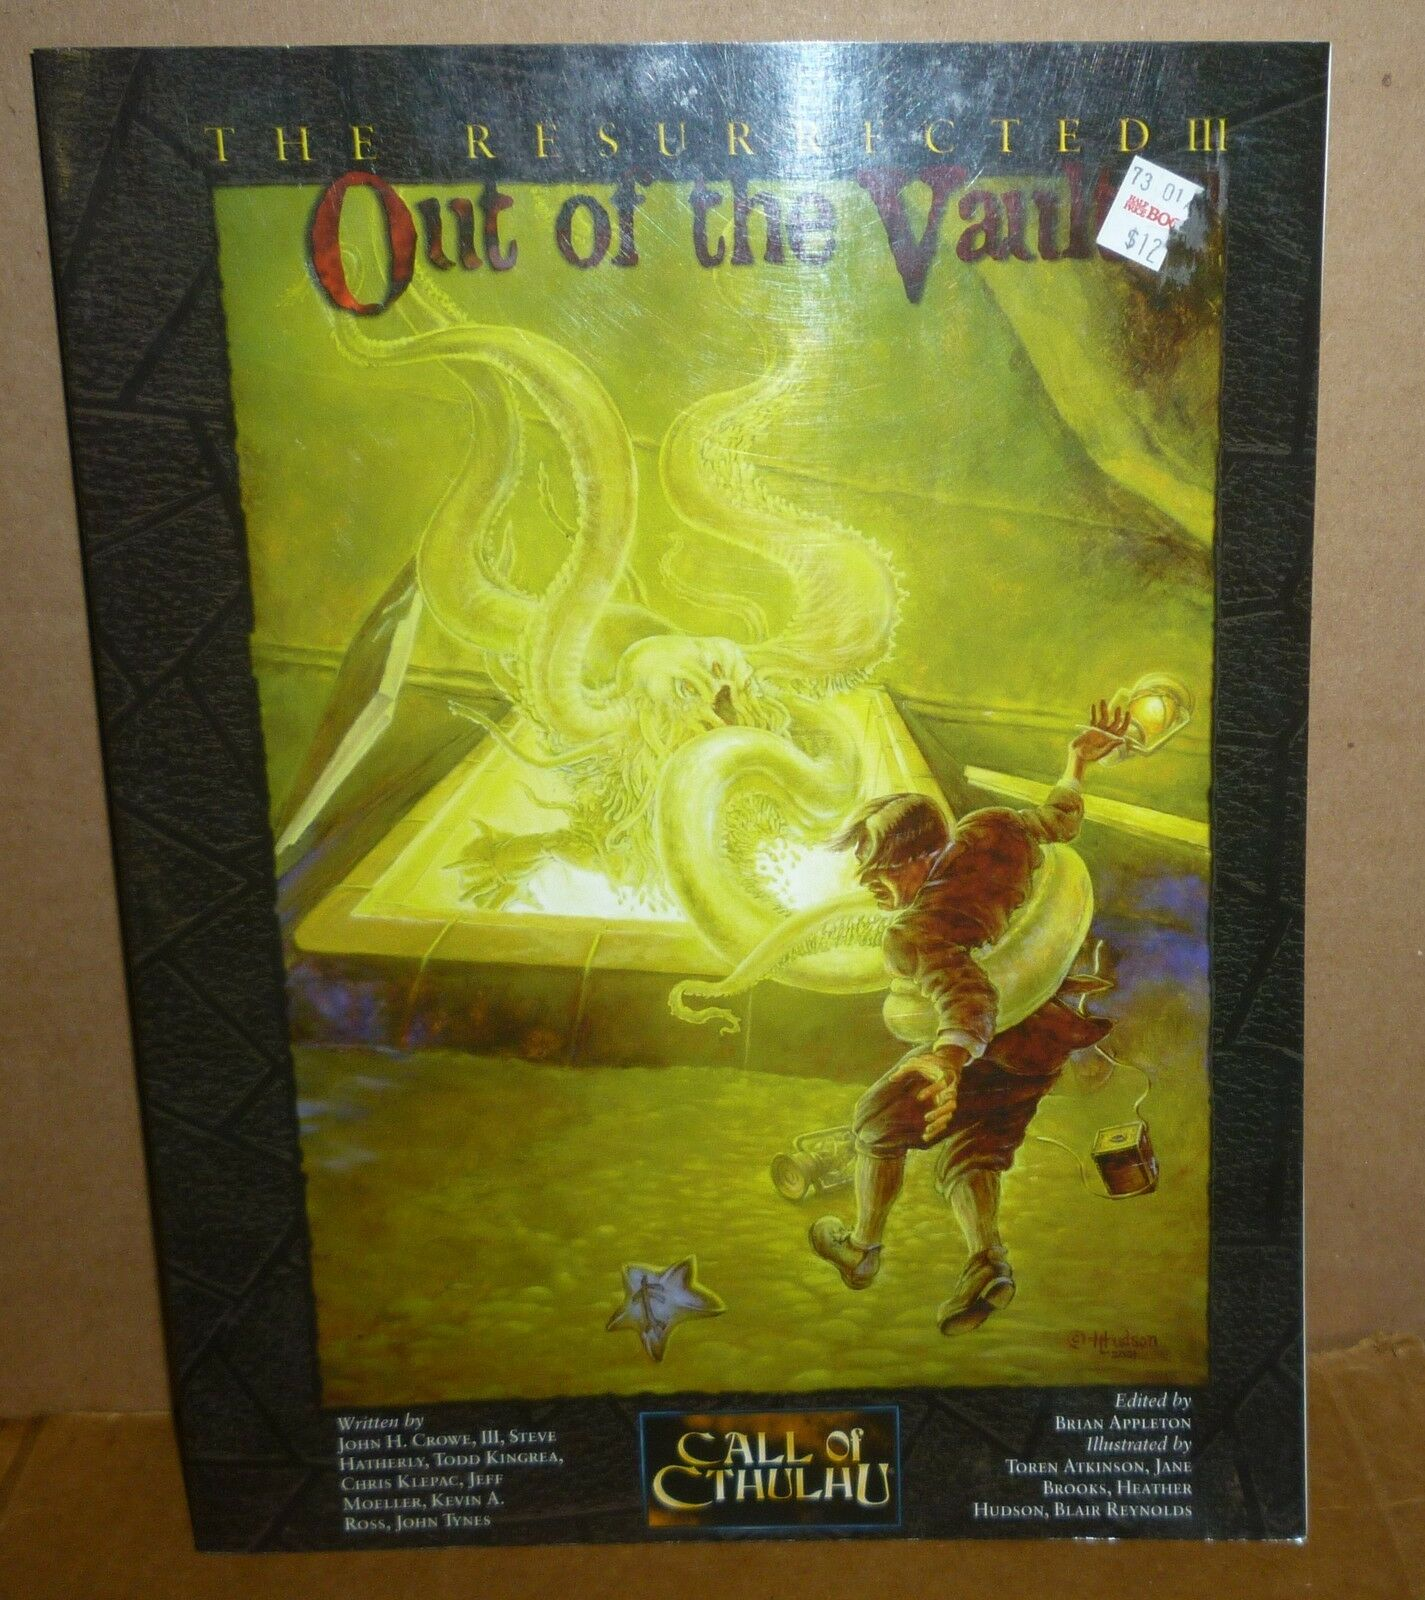 Ctutti of Cthulhu RESSURECTED III  OUT  OF THE VAULT RPG libro Good Condition  divertiti con uno sconto del 30-50%